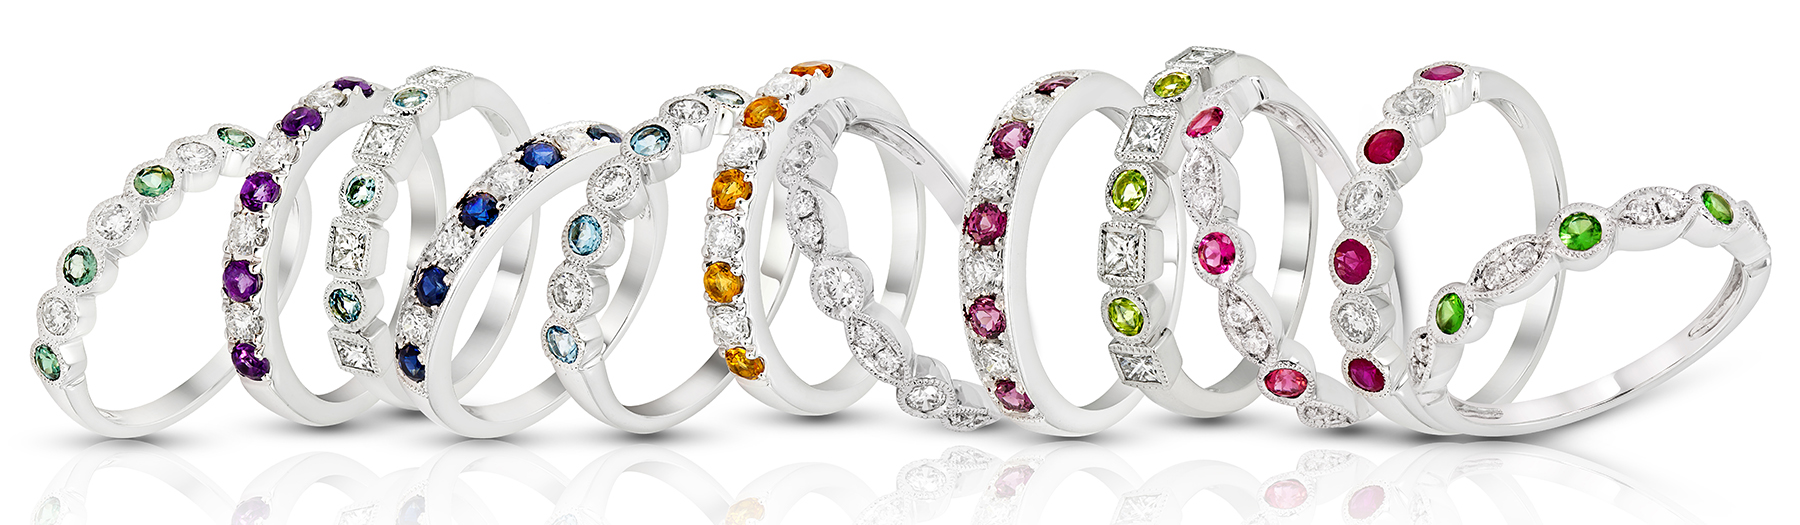 Costar Imports stackable birthstone band collection | JCK Supplier News